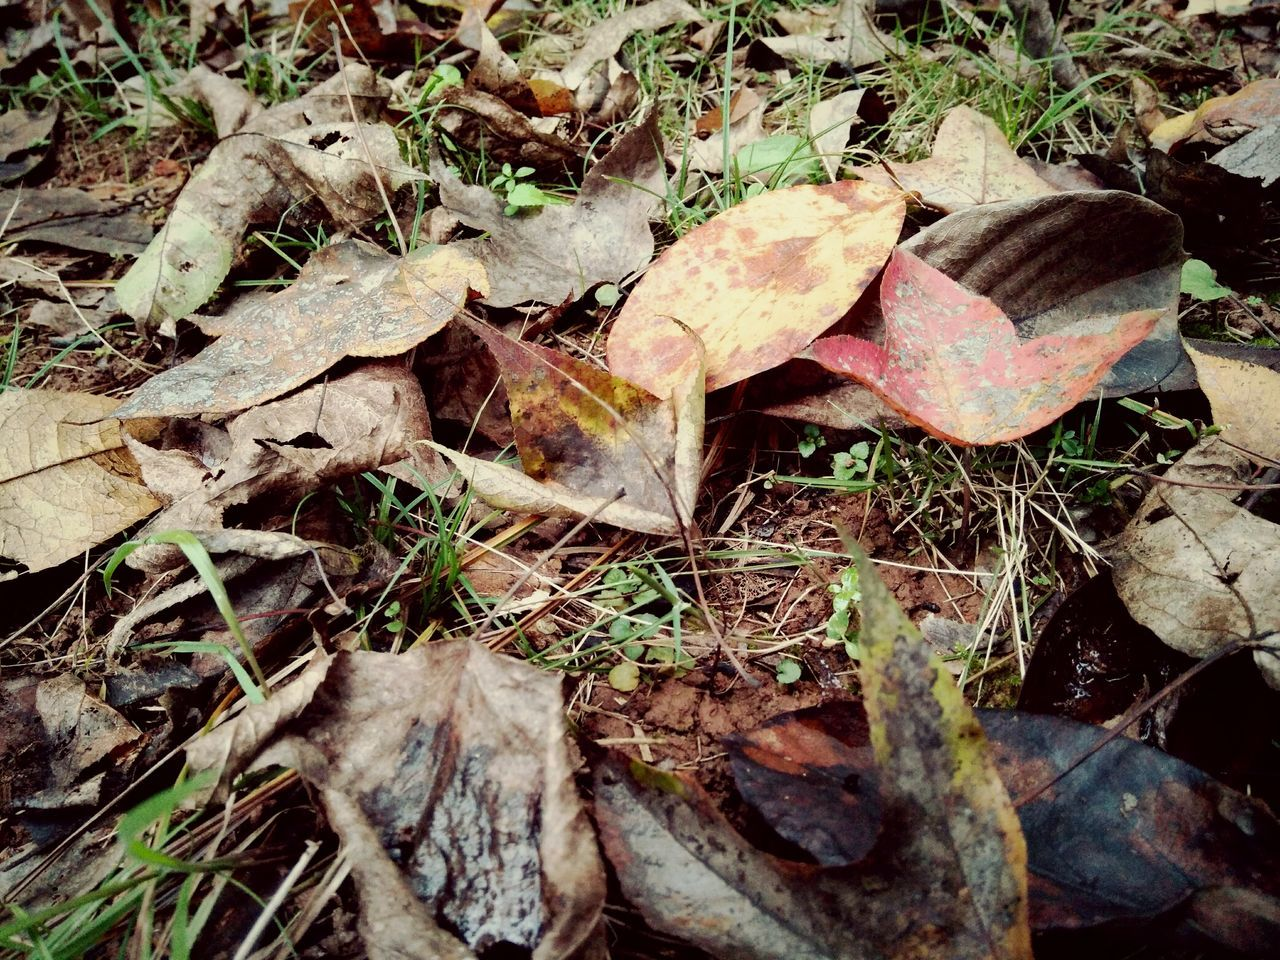 leaf, autumn, change, dry, nature, fallen, day, outdoors, high angle view, no people, fragility, field, close-up, forest, beauty in nature, maple